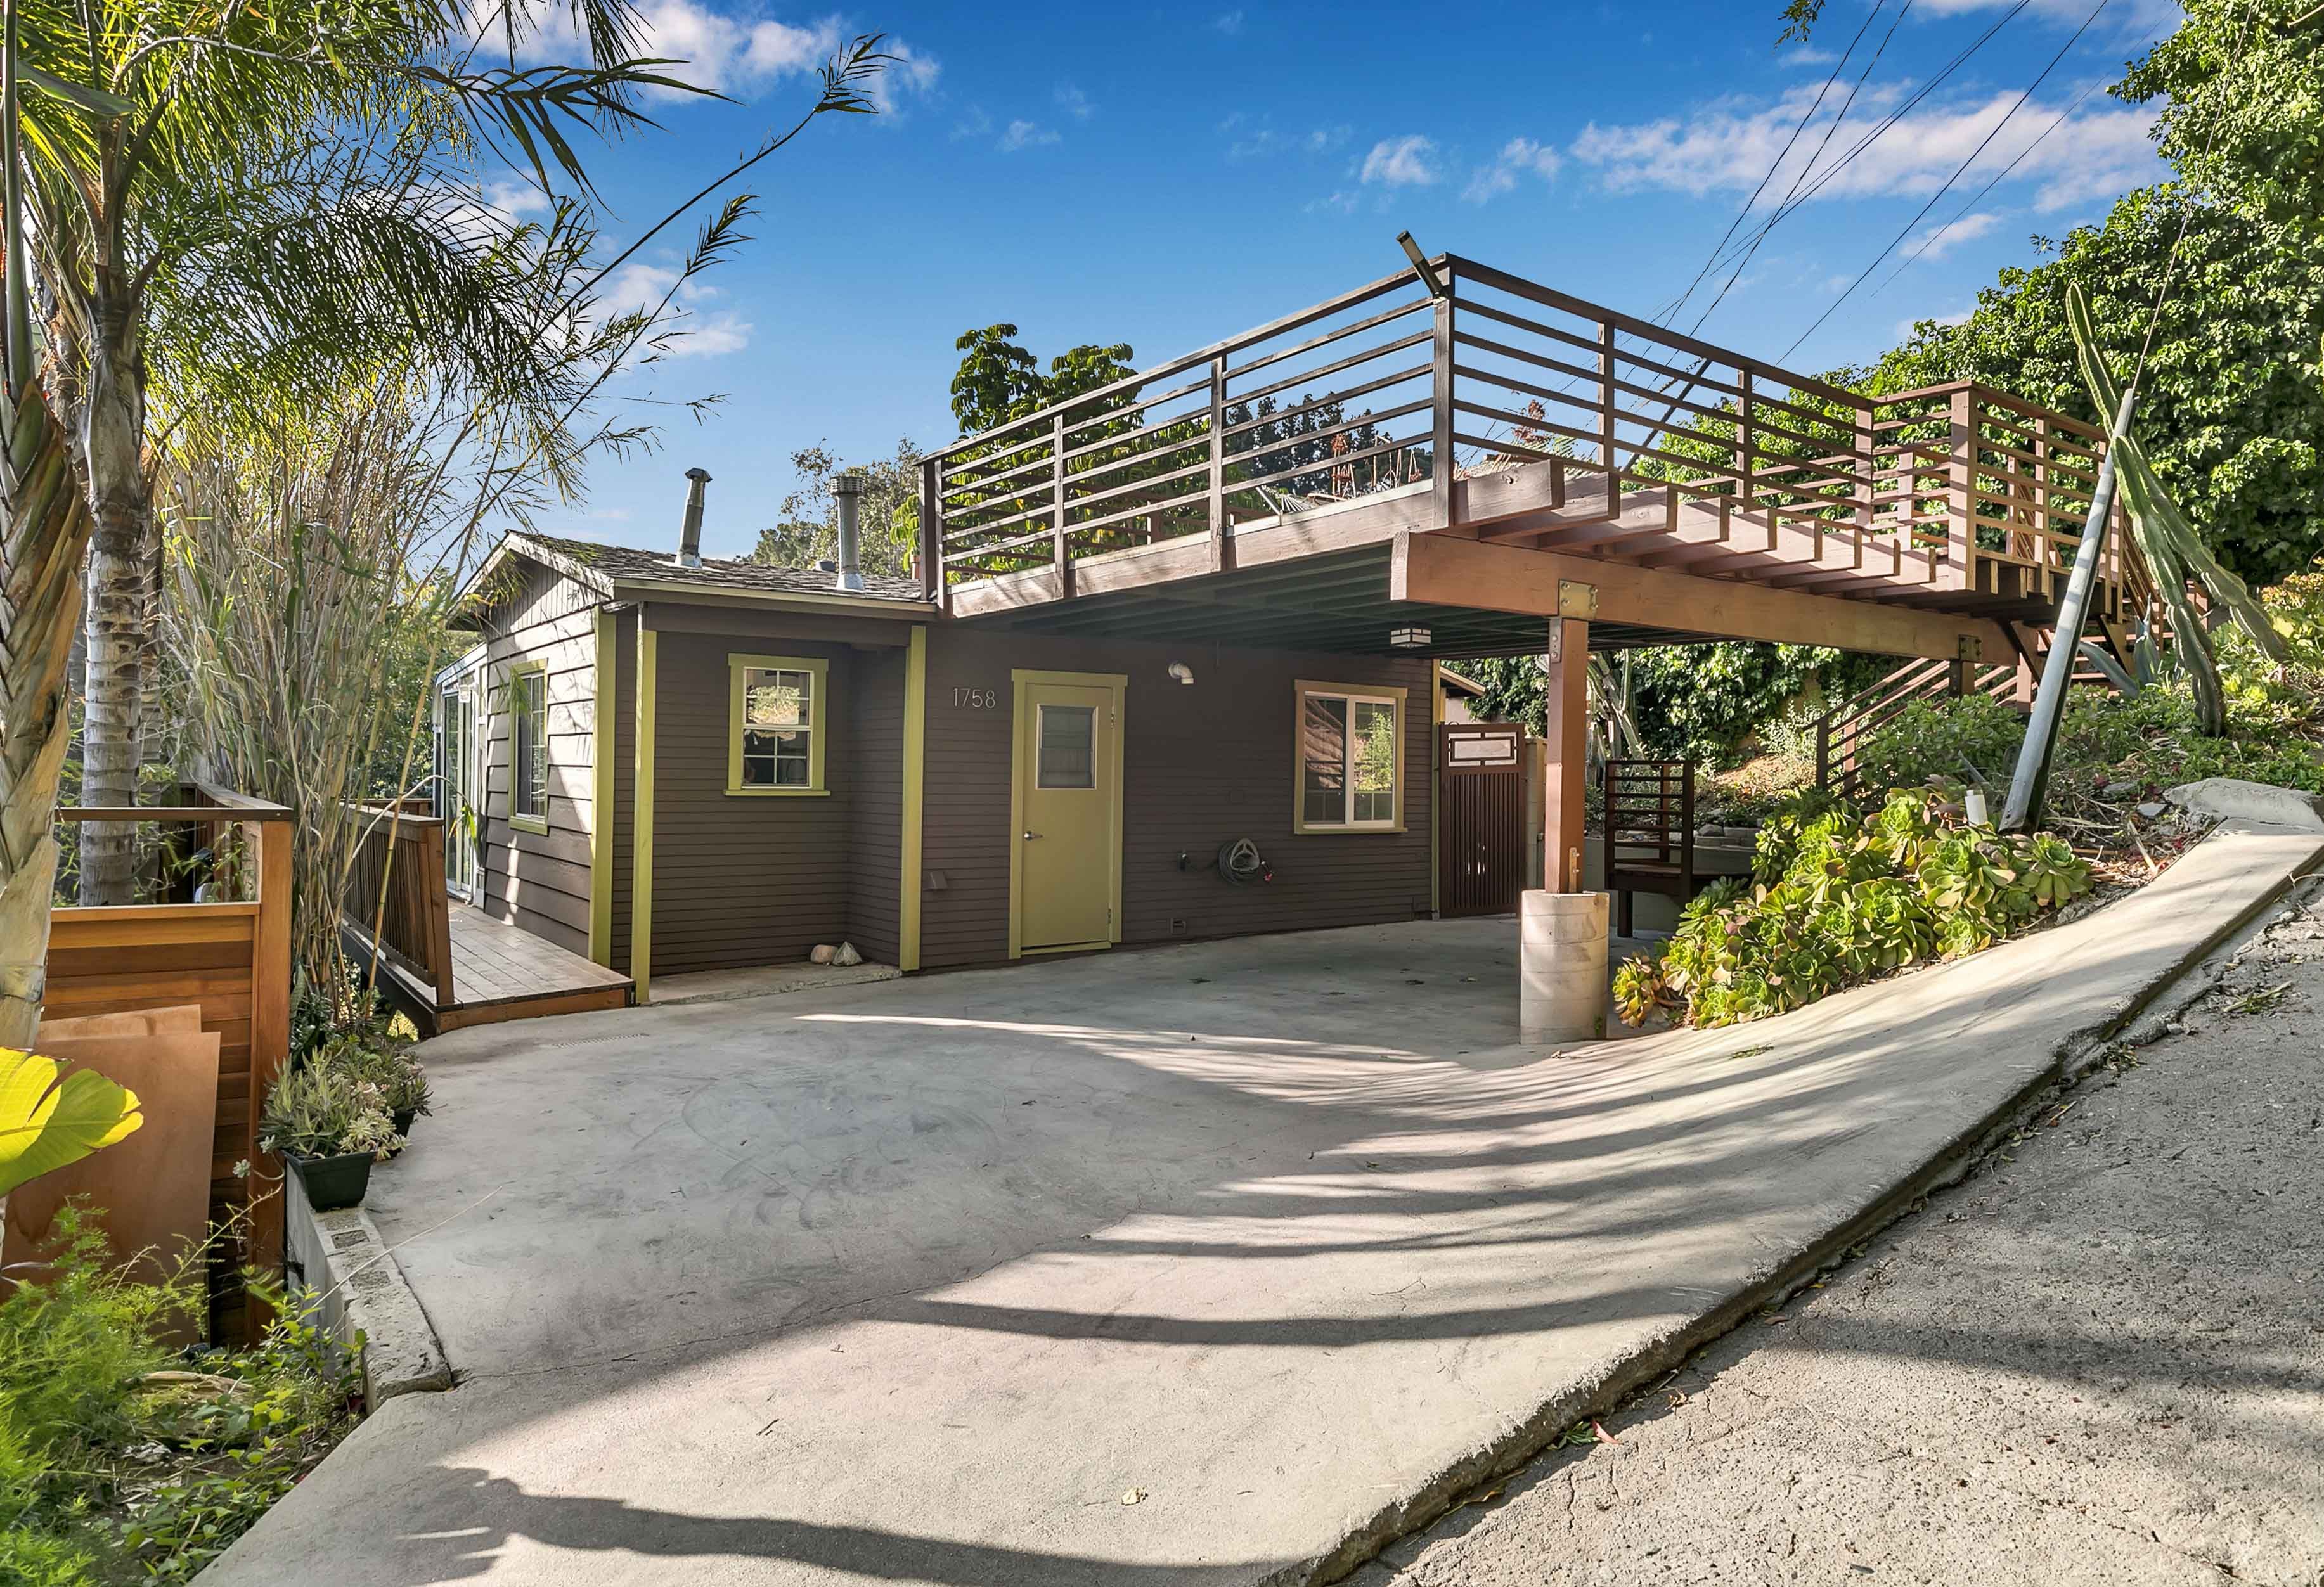 Hillside Woodland Escape | Private 2 Bedroom/2 Bath Single Family Home| Tiered Backyard + Deck | Parking Included!